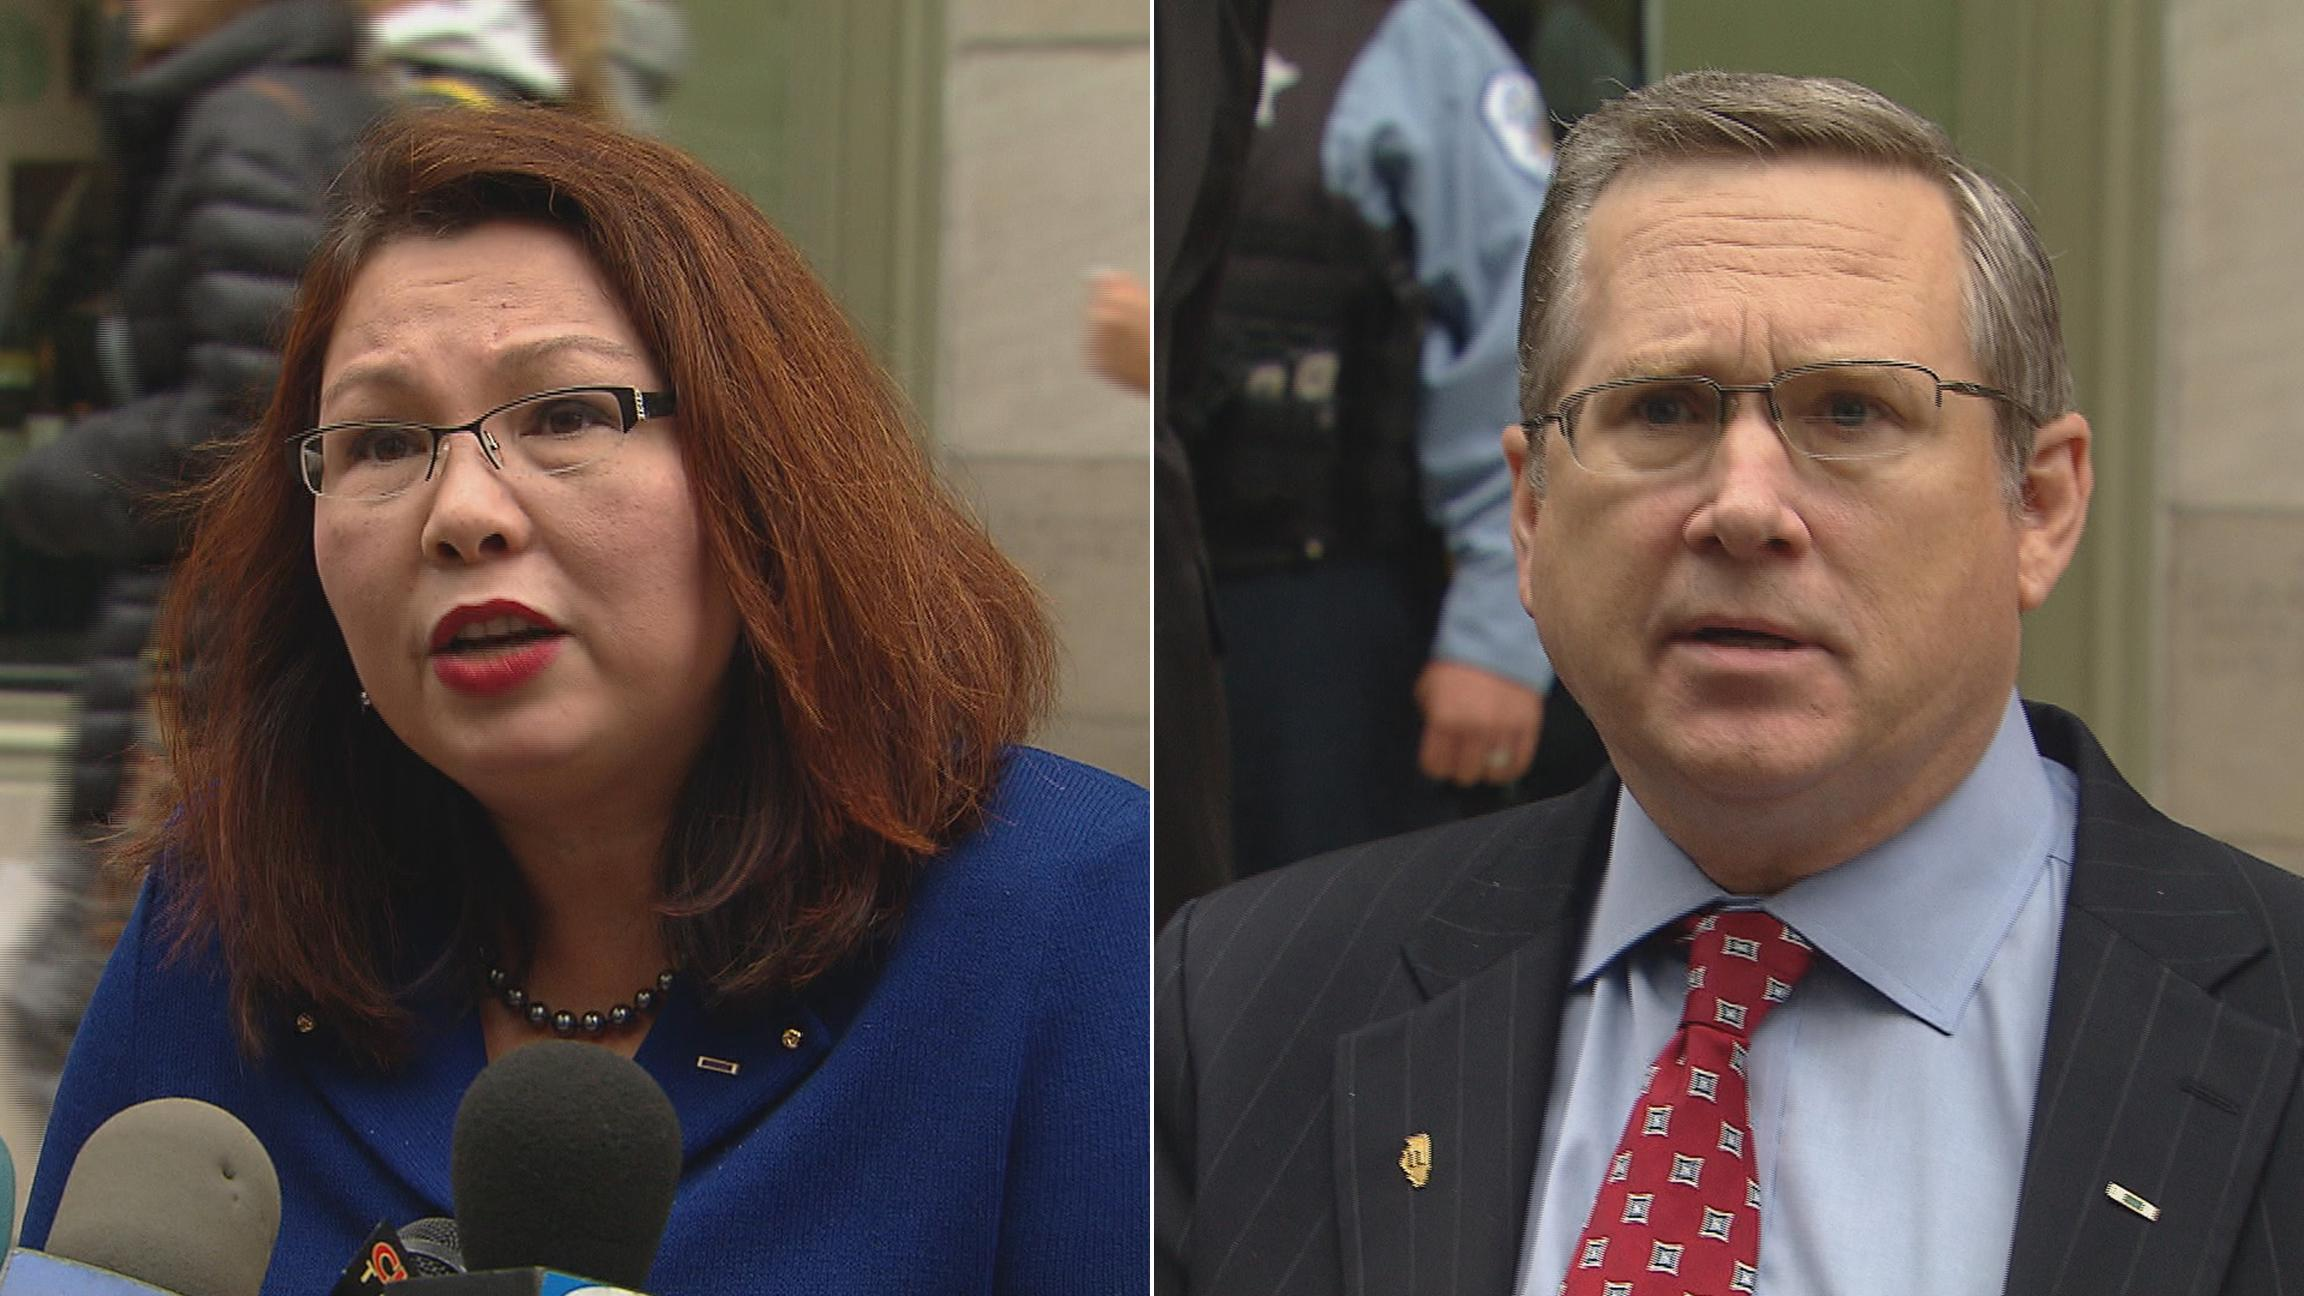 Duckworth, Kirk to face off in 1st meeting of US Senate race